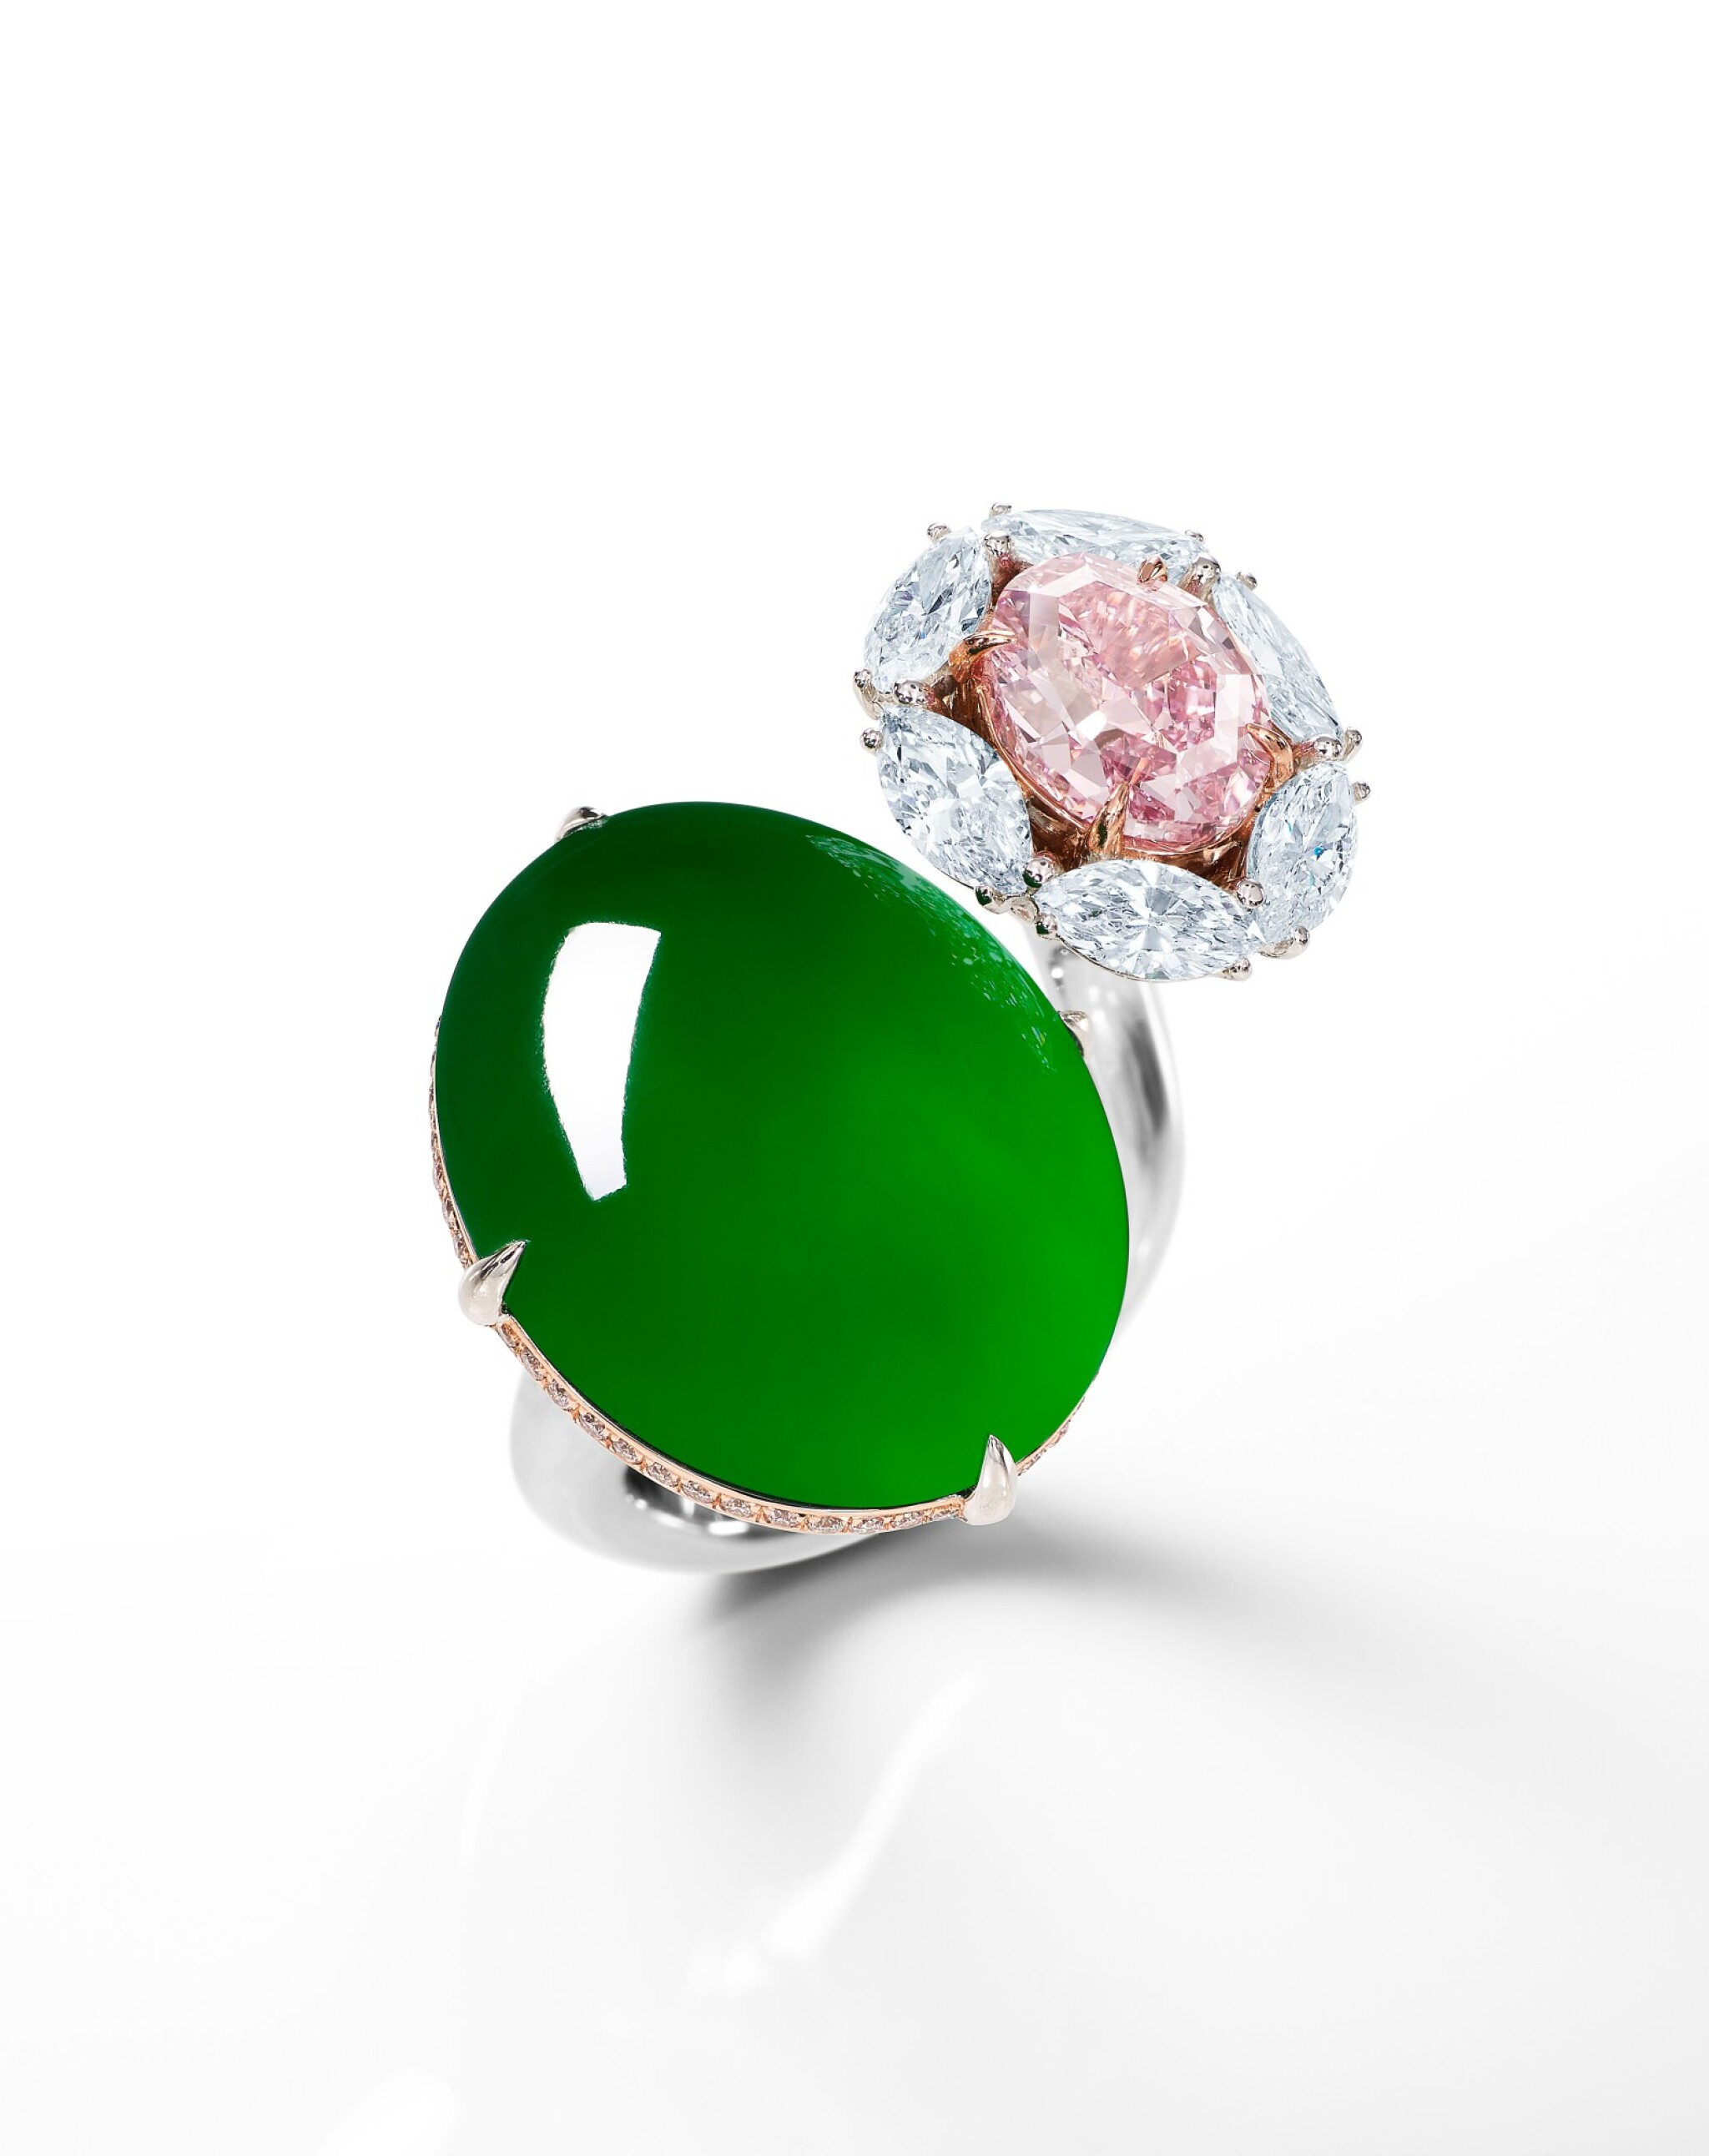 View 1 of Lot 1745. DESIGNED BY NICHOLAS LIEOU | A UNIQUE AND RARE JADEITE, FANCY VIVID PURPLISH PINK DIAMOND AND DIAMOND RING | 劉孝鵬設計 | 獨一無二 天然「帝王綠」翡翠 及 2.08卡拉 艷彩紫粉紅色鑽石 配 鑽石 戒指.